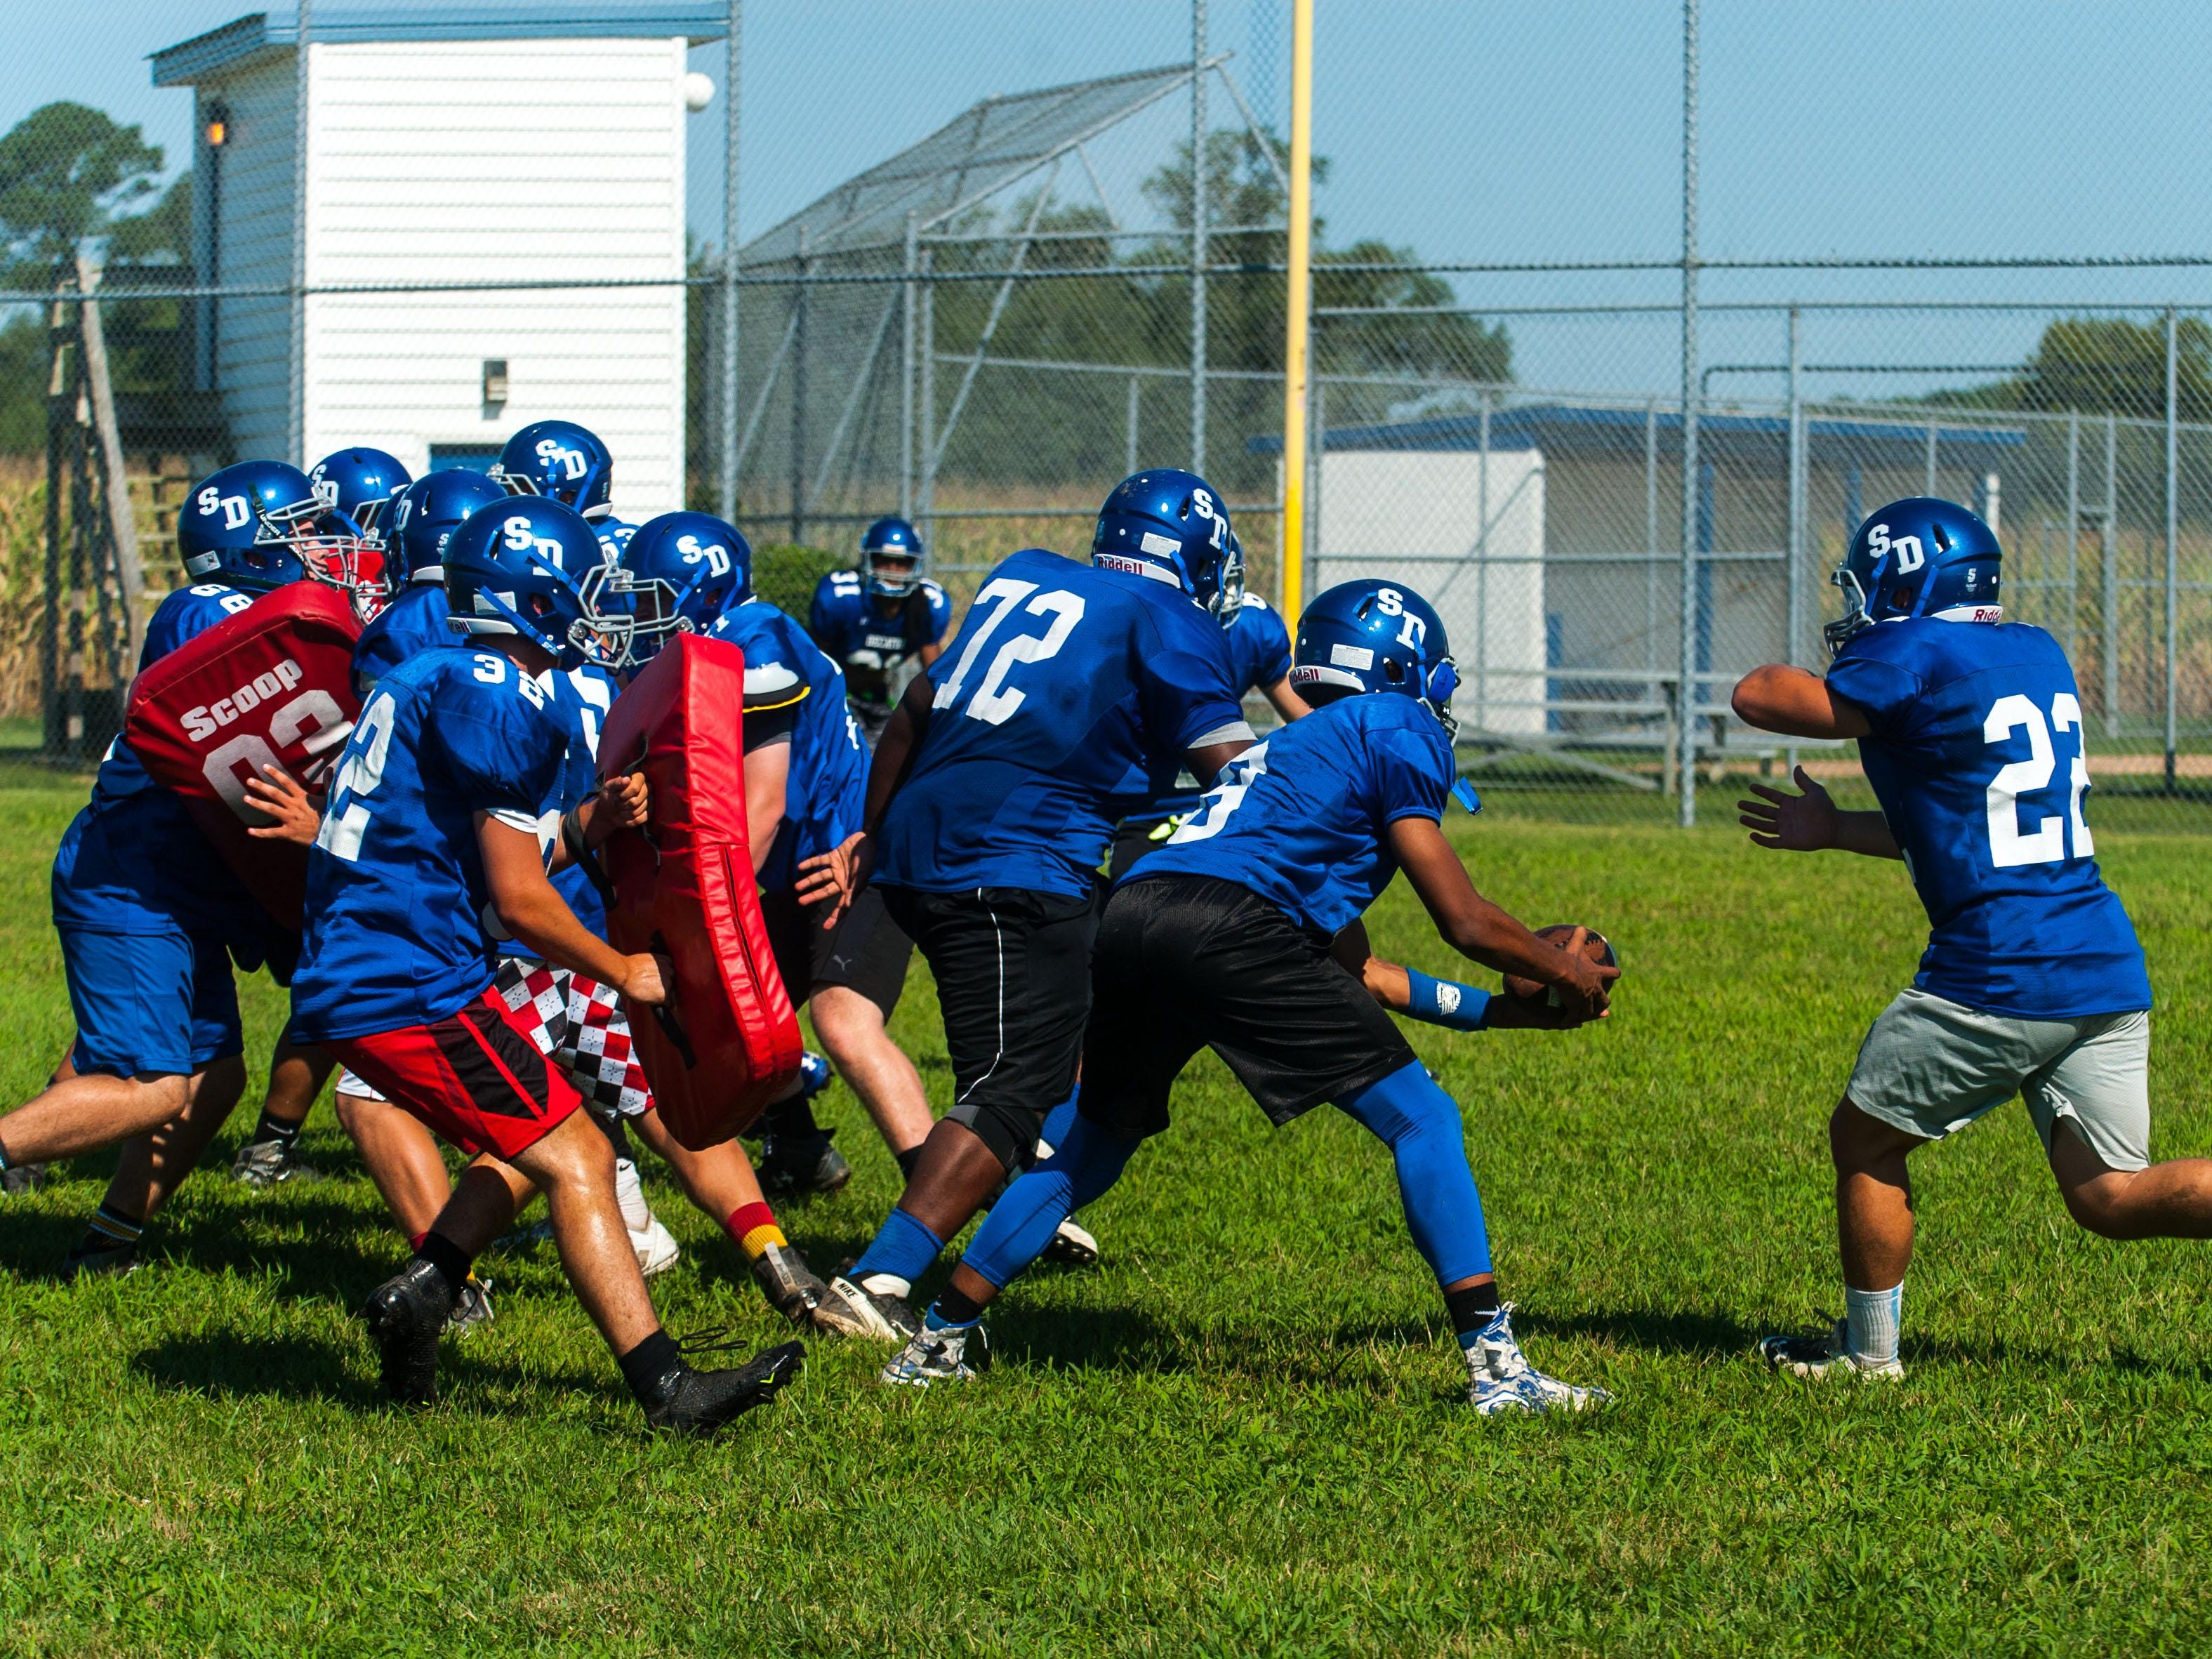 Stpehen Decatur works through offensive plays on Friday morning in Berlin.